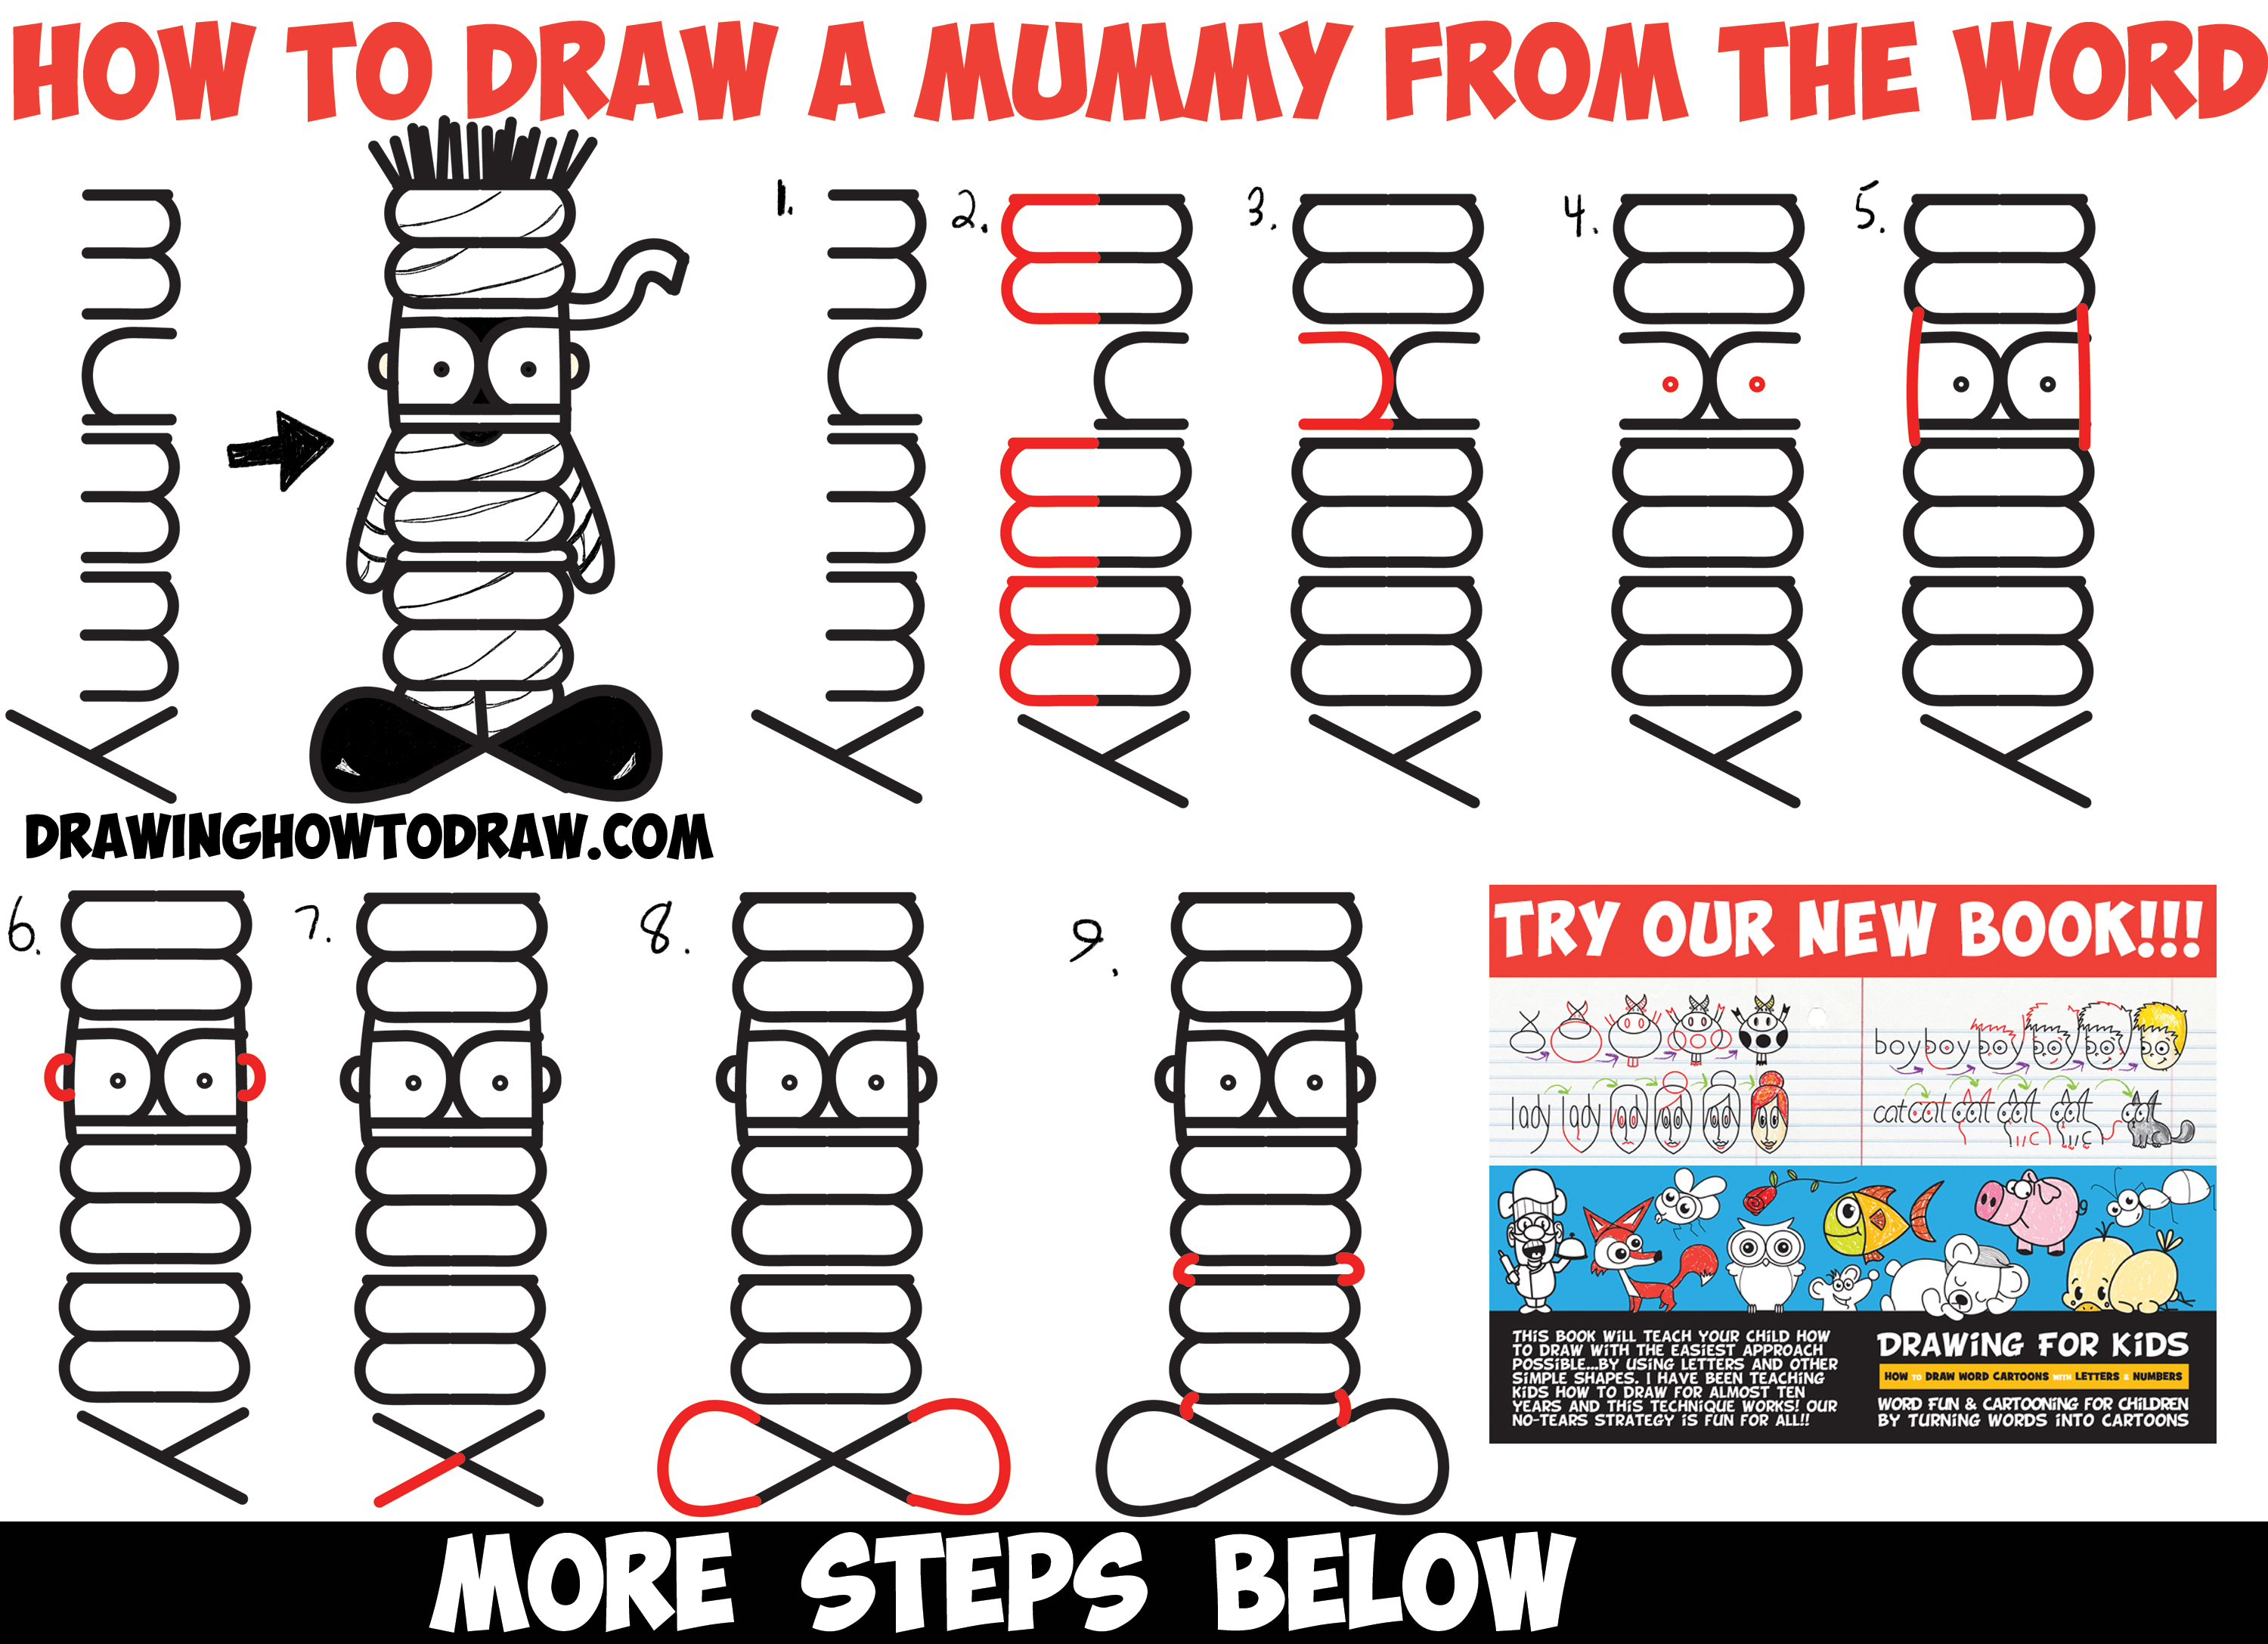 How to Draw a Cartoon Mummy Word Toon / Cartoon - Easy Step by Step Drawing Tutorial for Kids